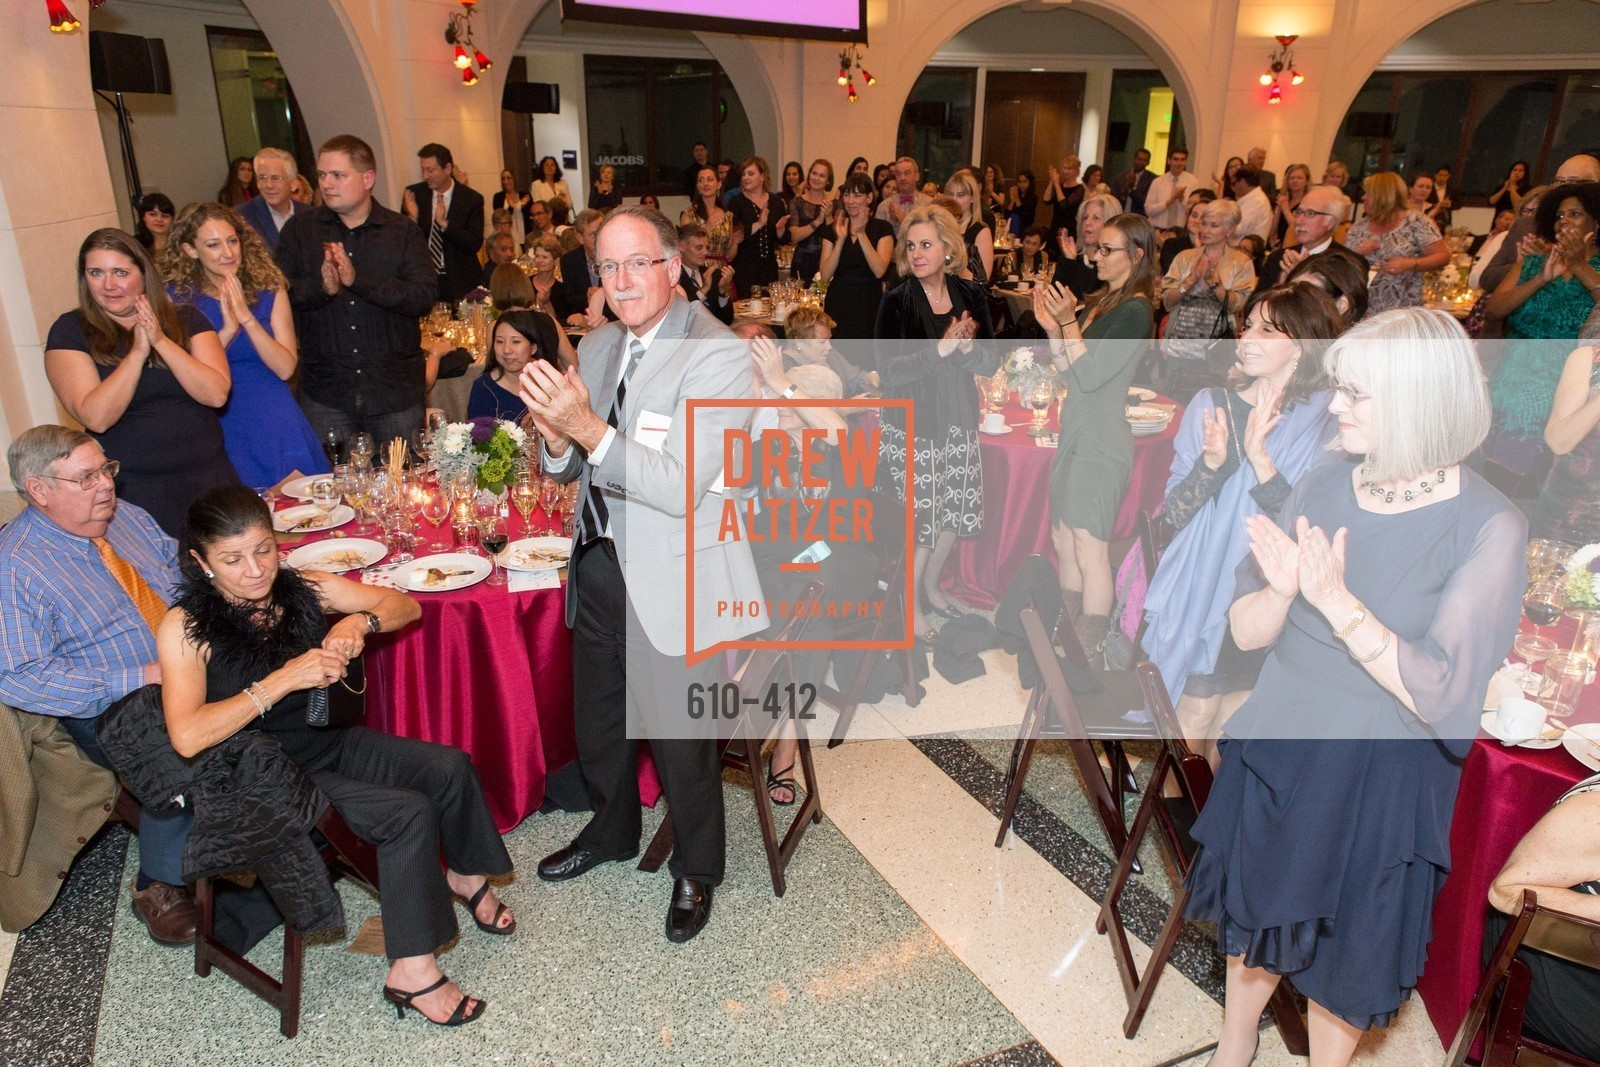 Atmosphere, Girls Inc's of Alameda WOMEN OF TASTE, October 24th, 2015, Photo,Drew Altizer, Drew Altizer Photography, full-service agency, private events, San Francisco photographer, photographer california